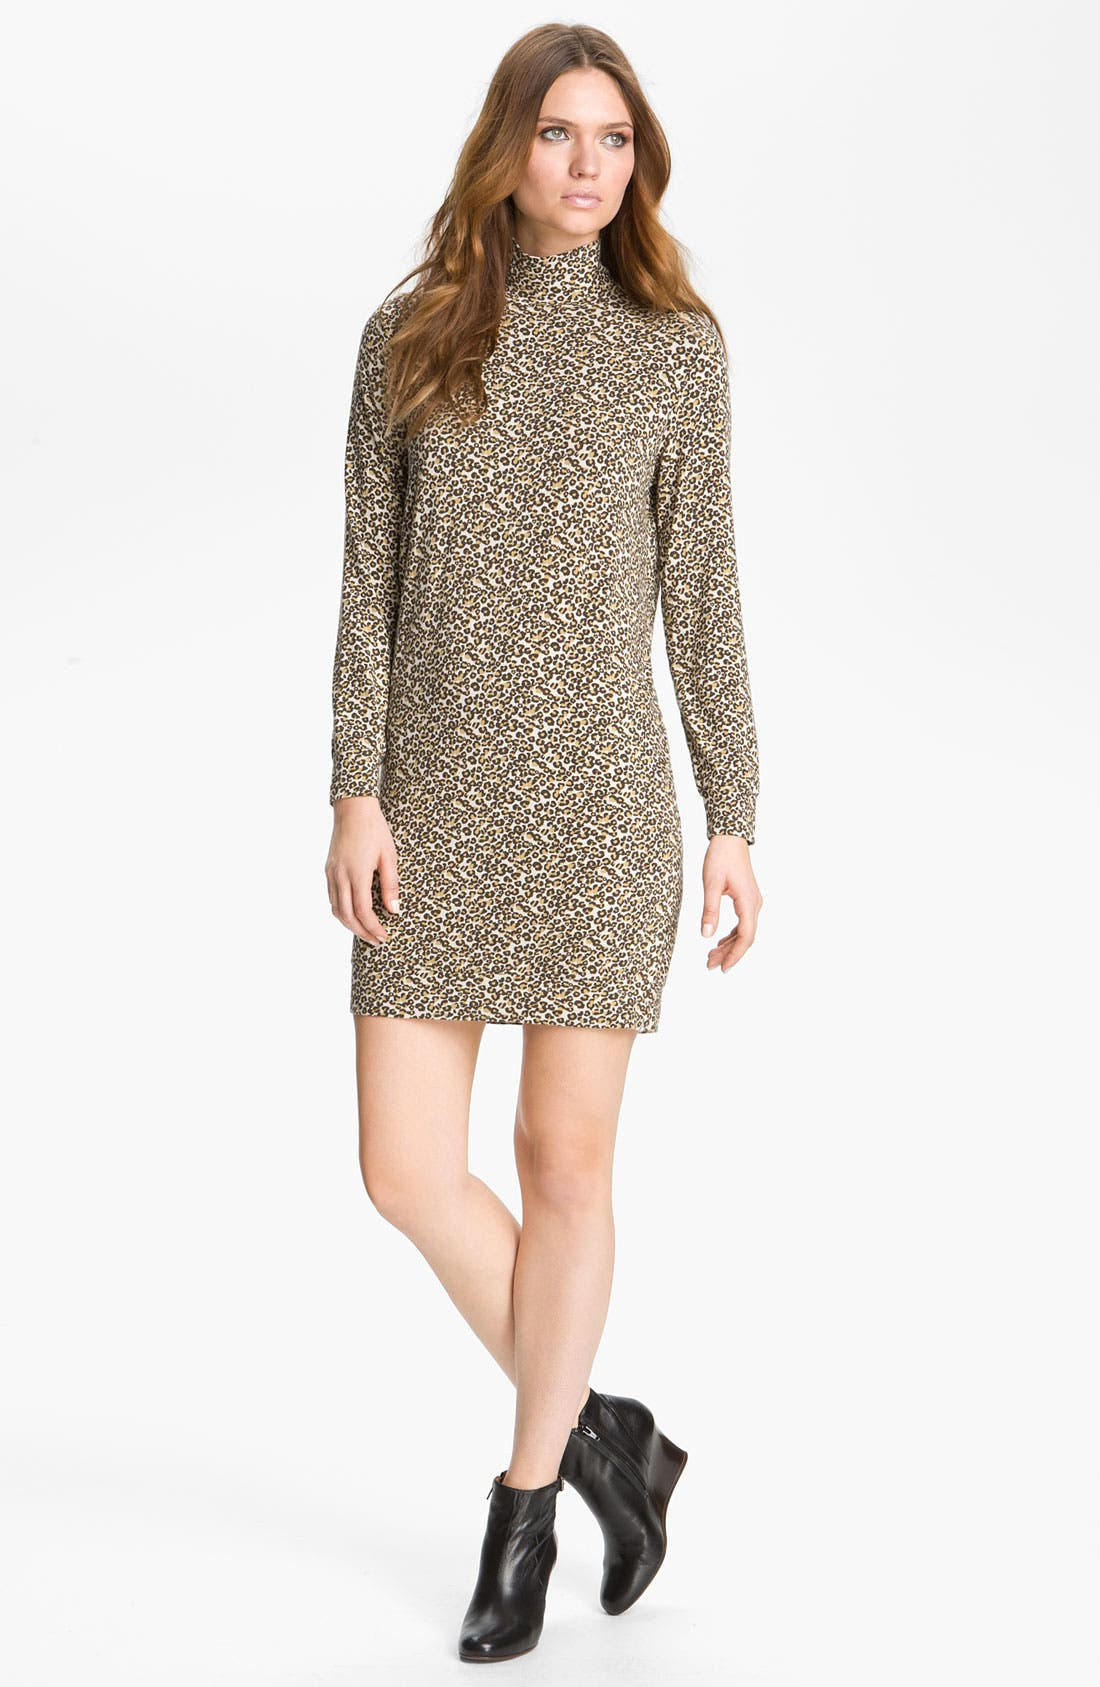 Main Image - A.P.C. Leopard Print Turtleneck Dress